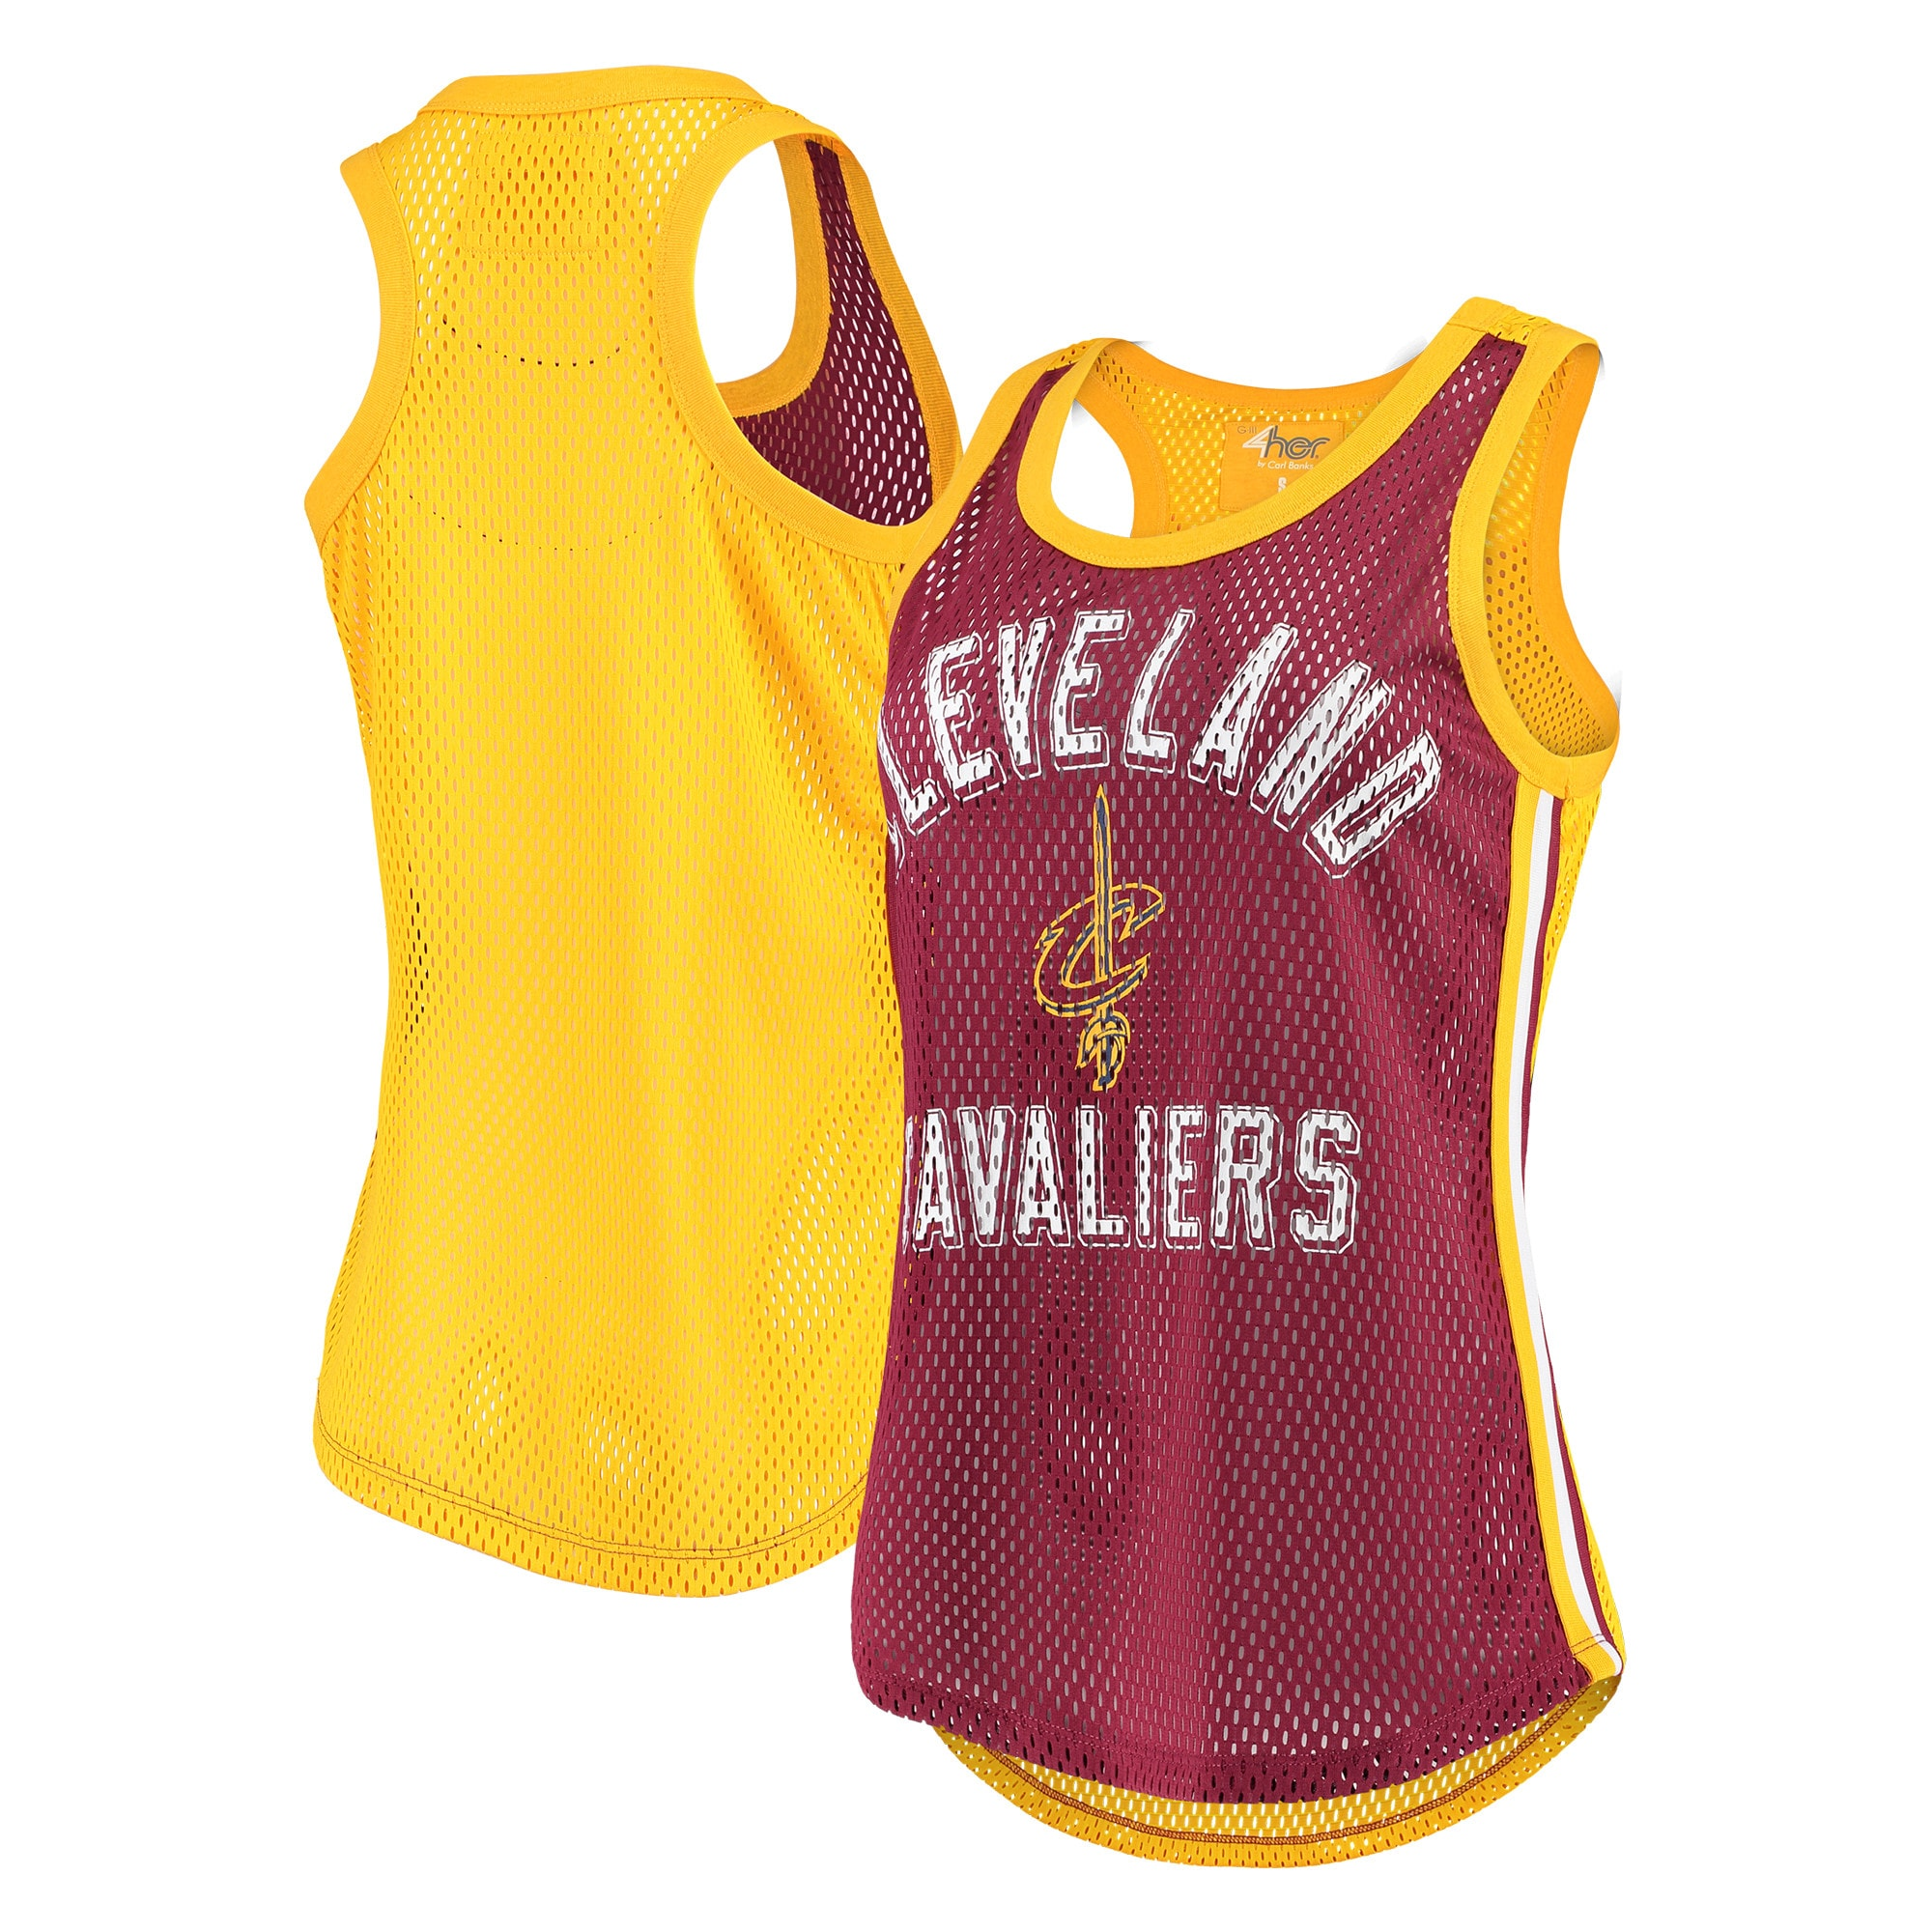 Cleveland Cavaliers G-III 4Her by Carl Banks Women's Comeback Mesh Racerback Tank Top - Wine/Gold